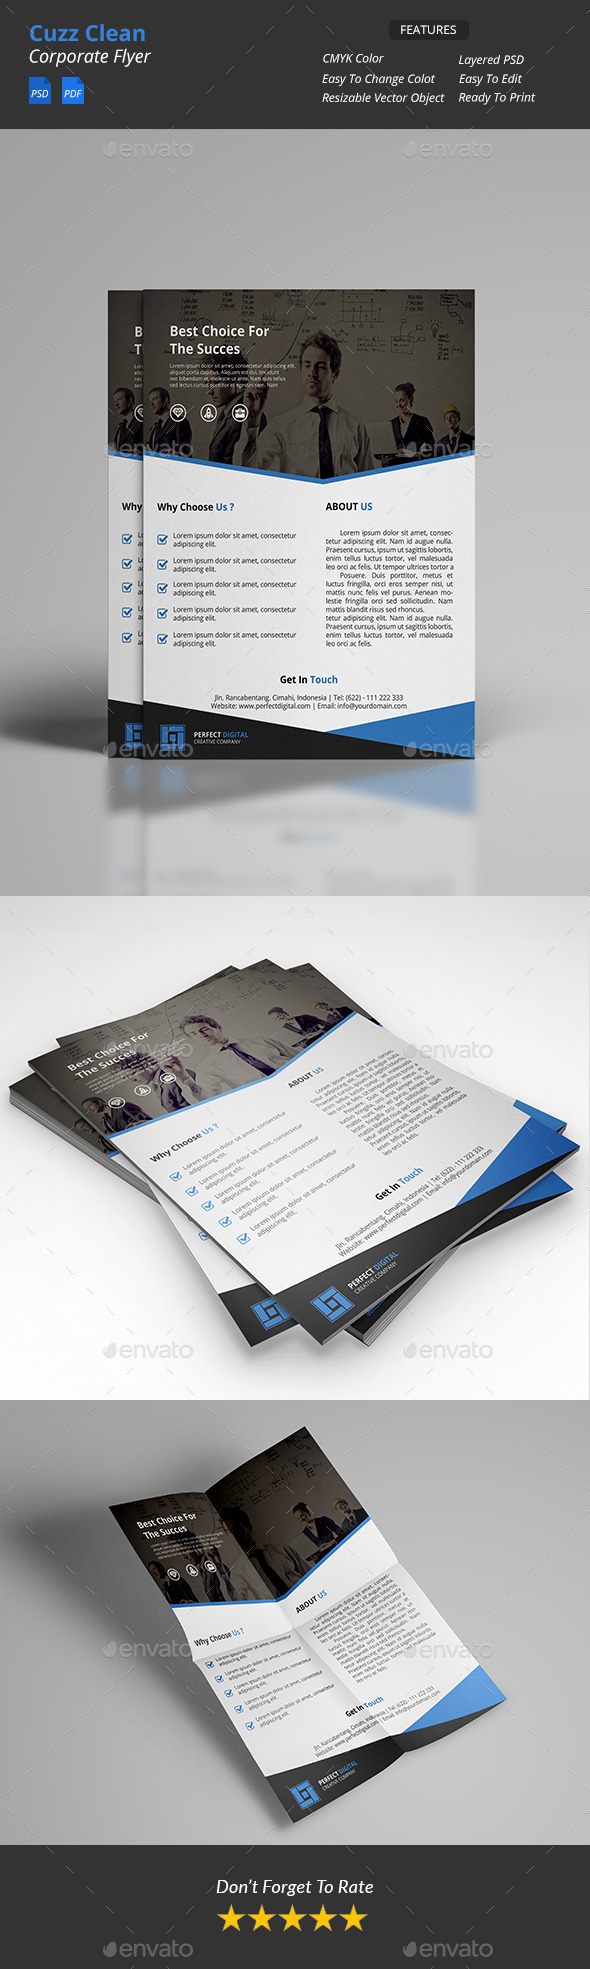 Cuzz - Clean Corporate Flyer - Corporate Flyers